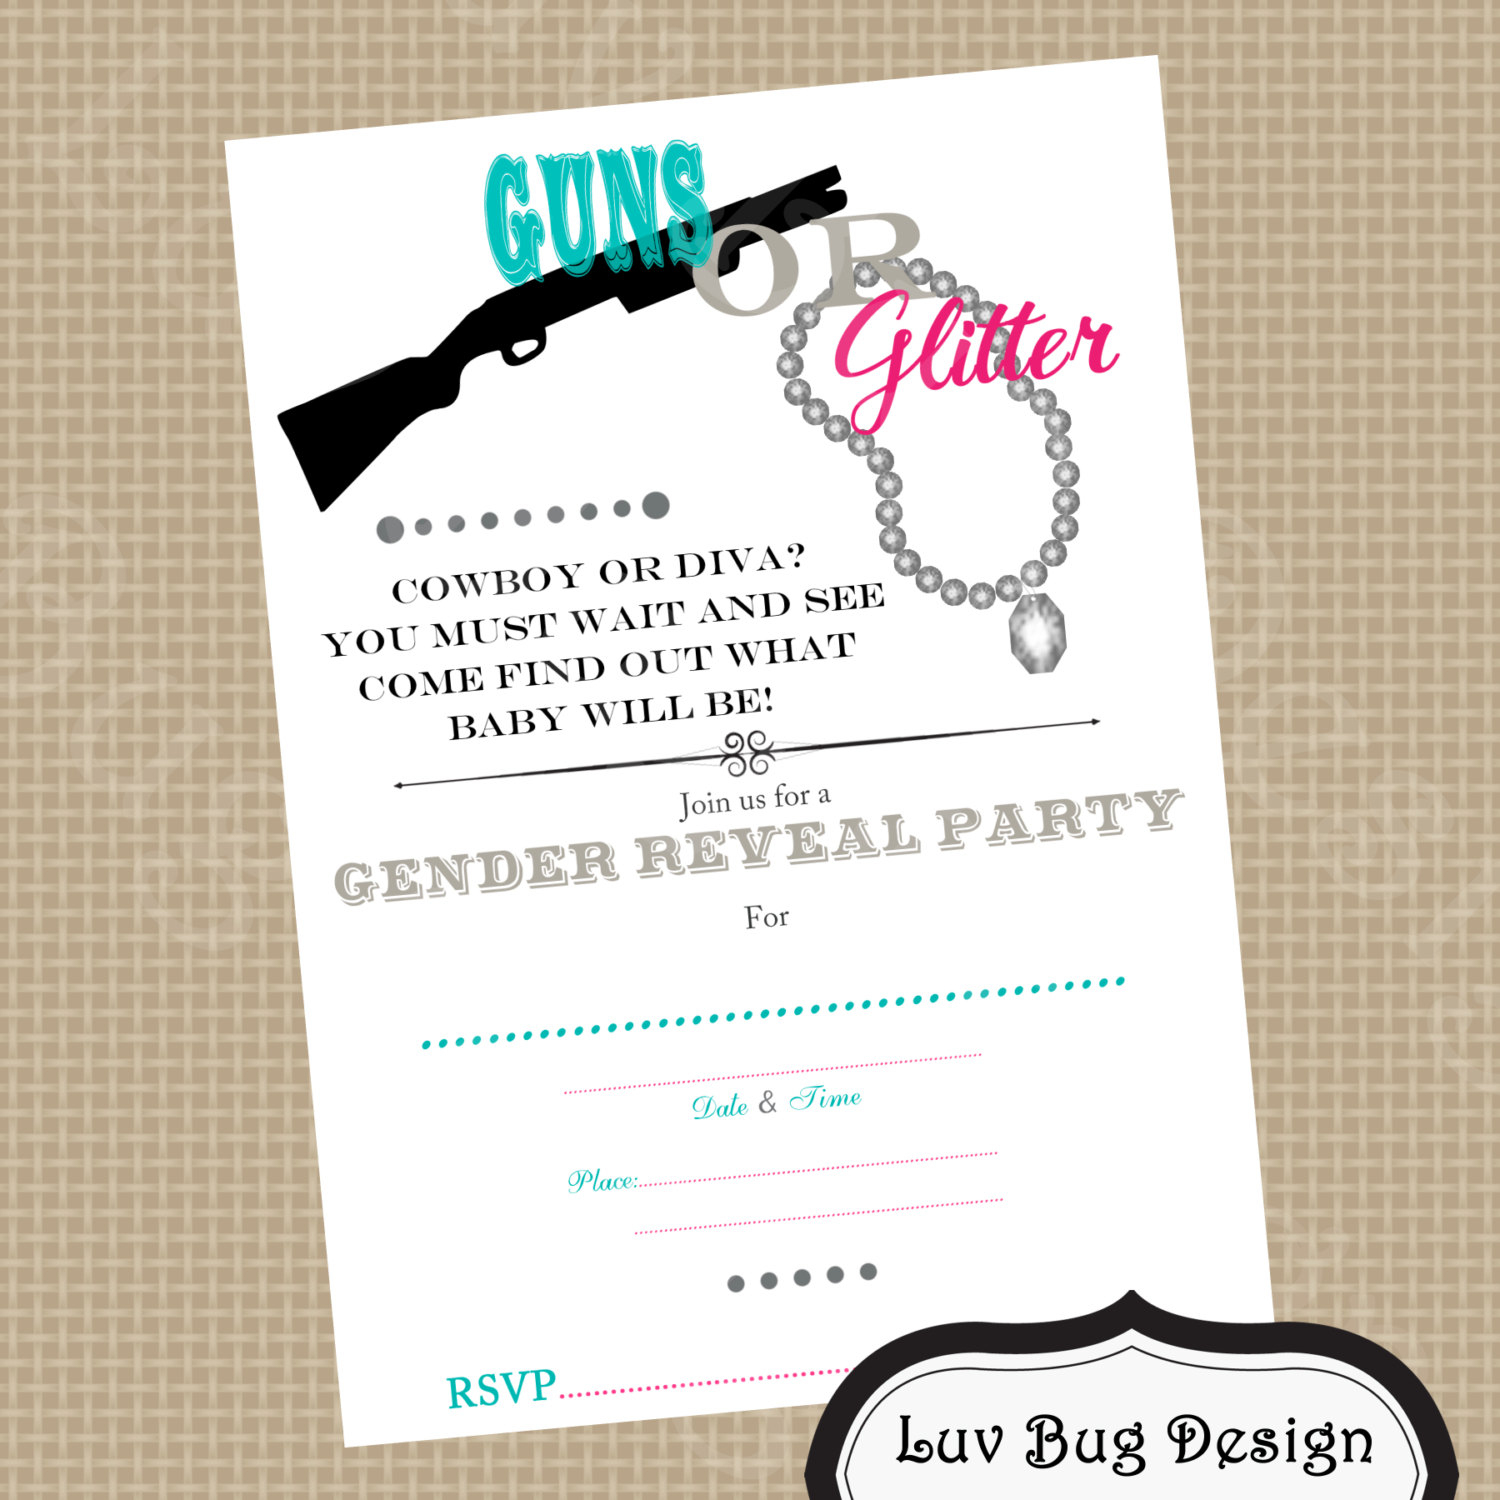 Free Printable Gender Reveal Party Invitations And The Invitations - Free Printable Gender Reveal Invitations